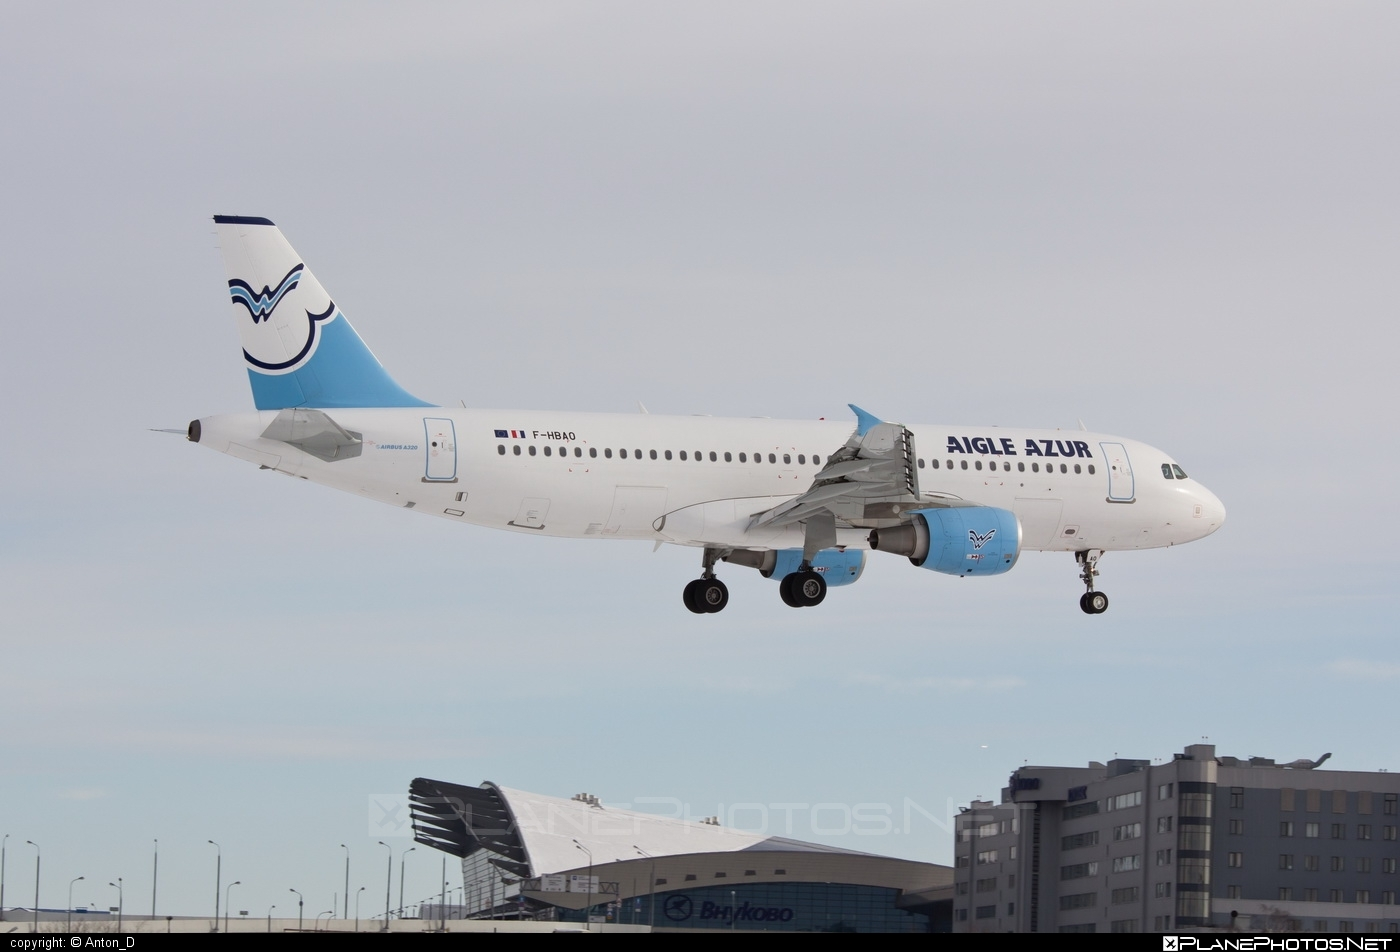 Airbus A320-214 - F-HBAO operated by Aigle Azur #a320 #a320family #airbus #airbus320